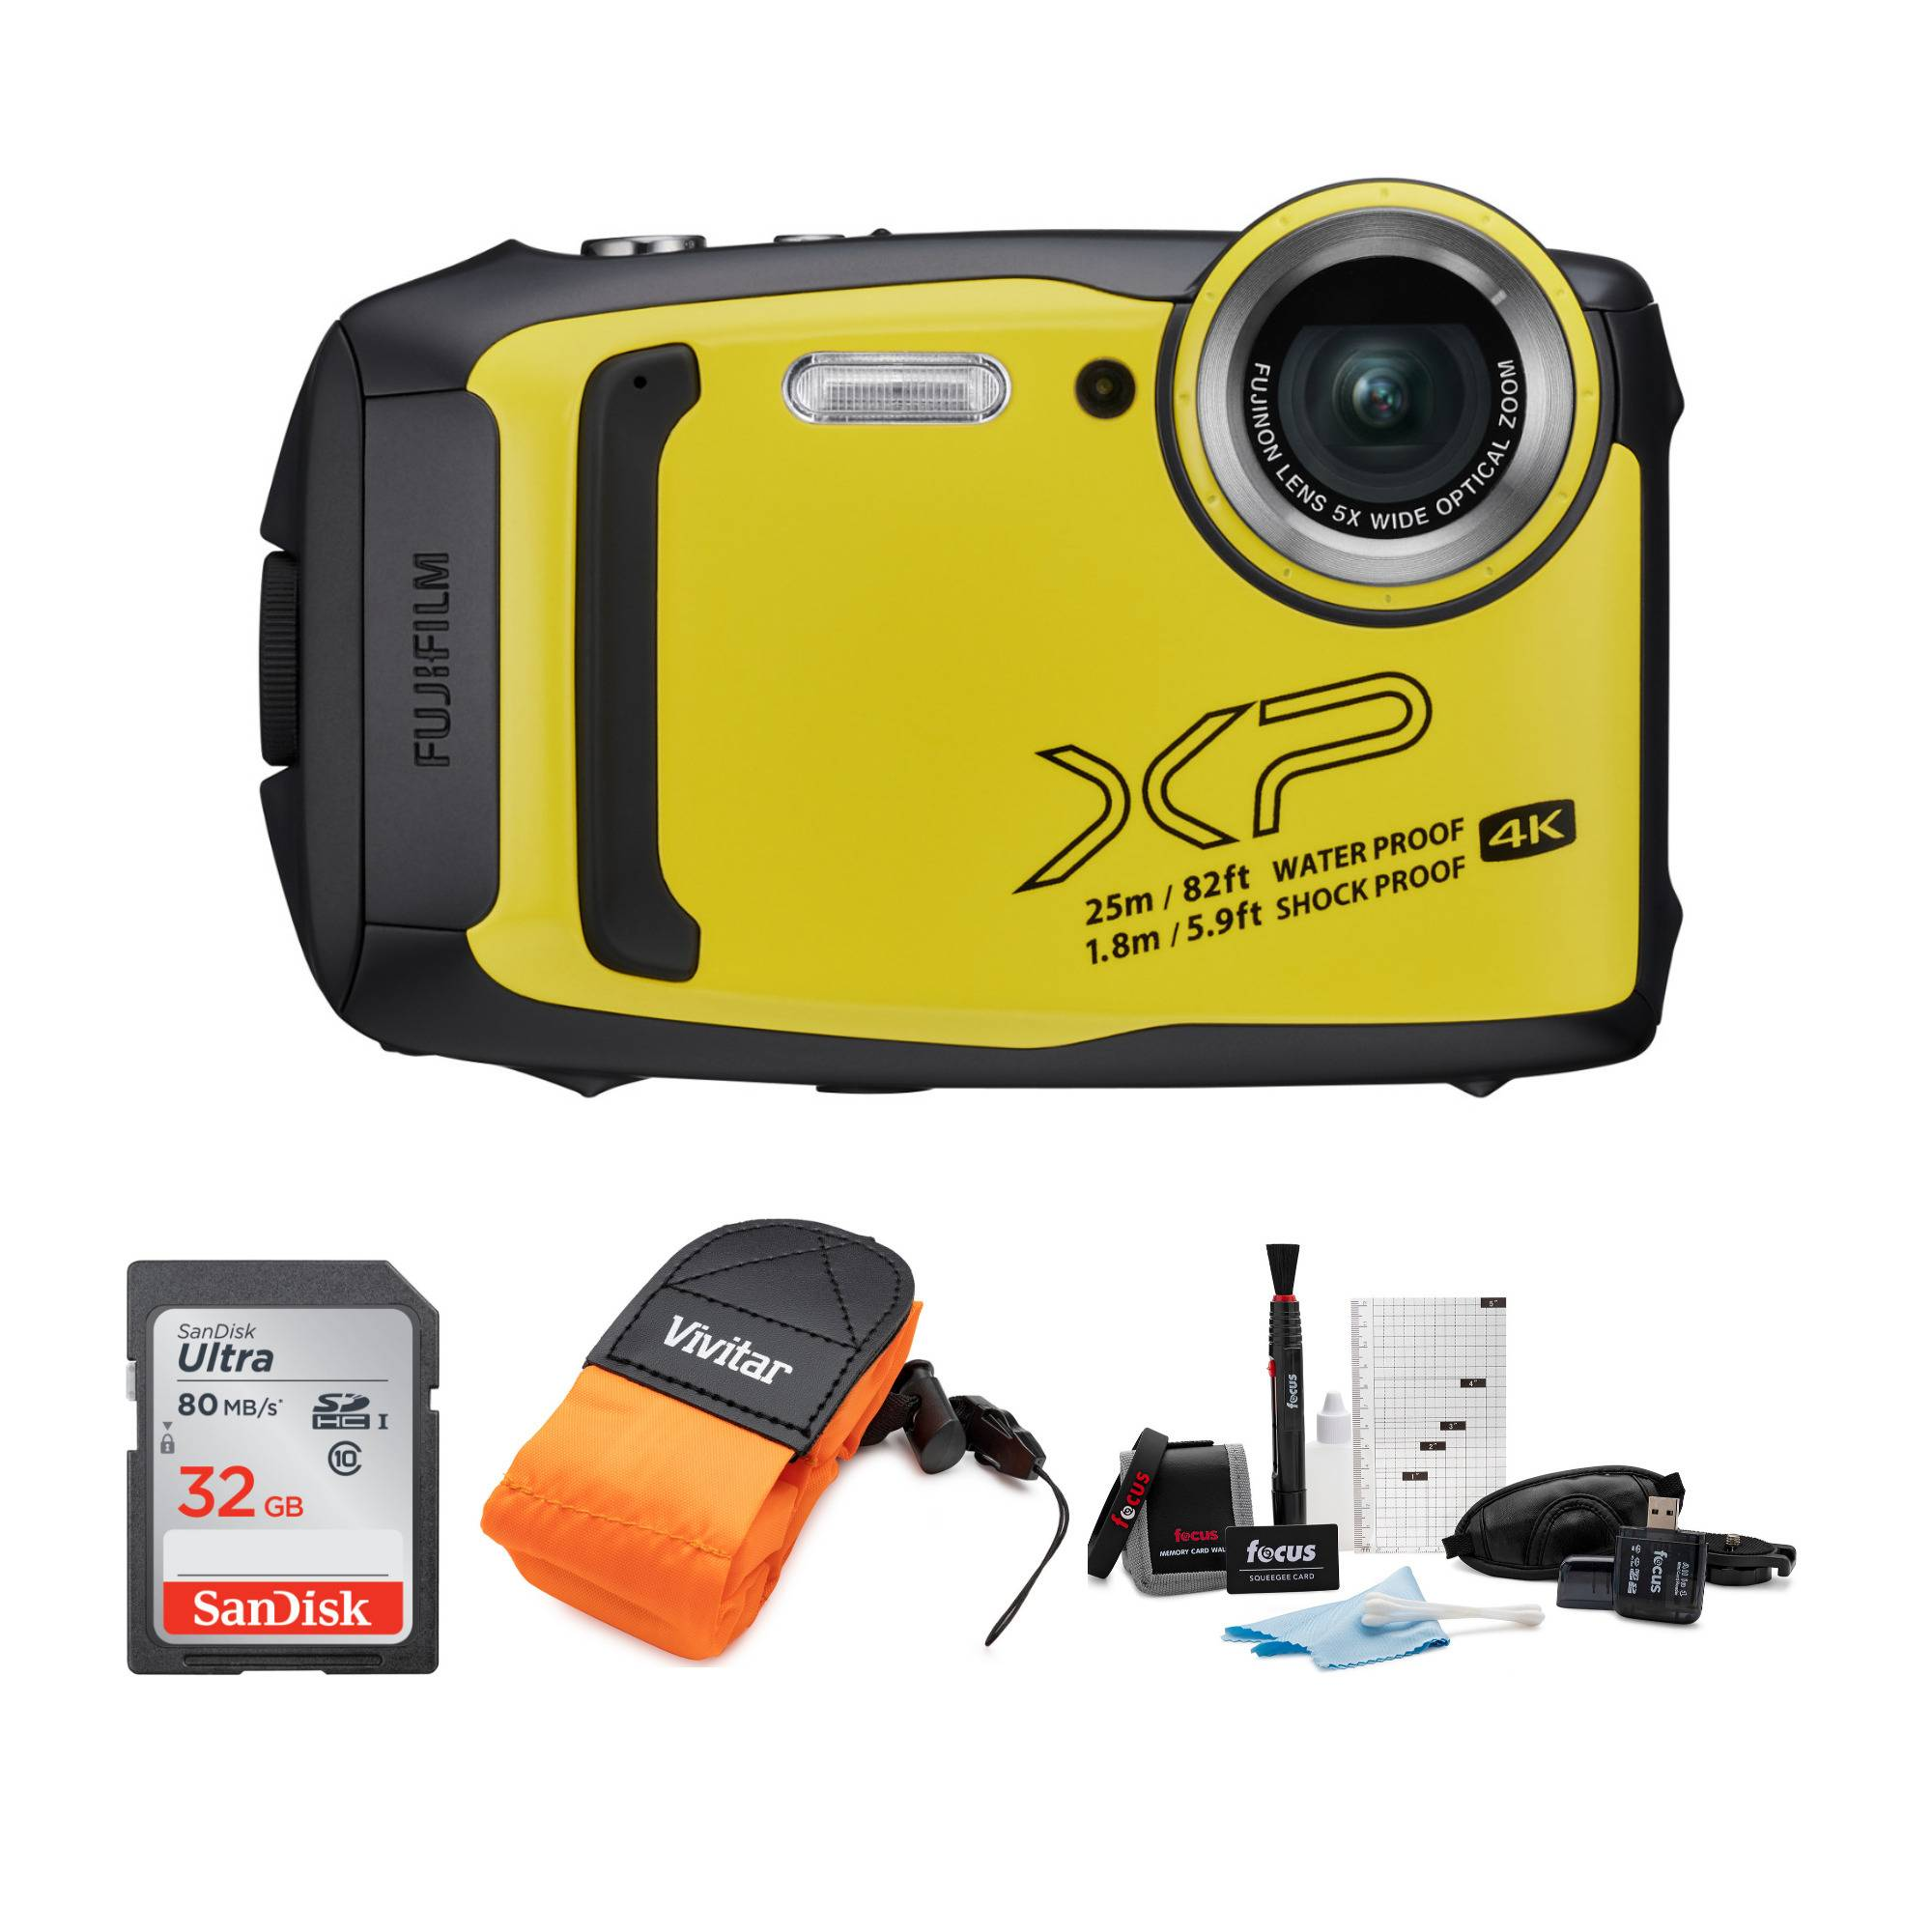 Focus Camera Fujifilm FinePix XP140 Digital Camera (Yellow) Refurbished with Strap Accessory Bundle